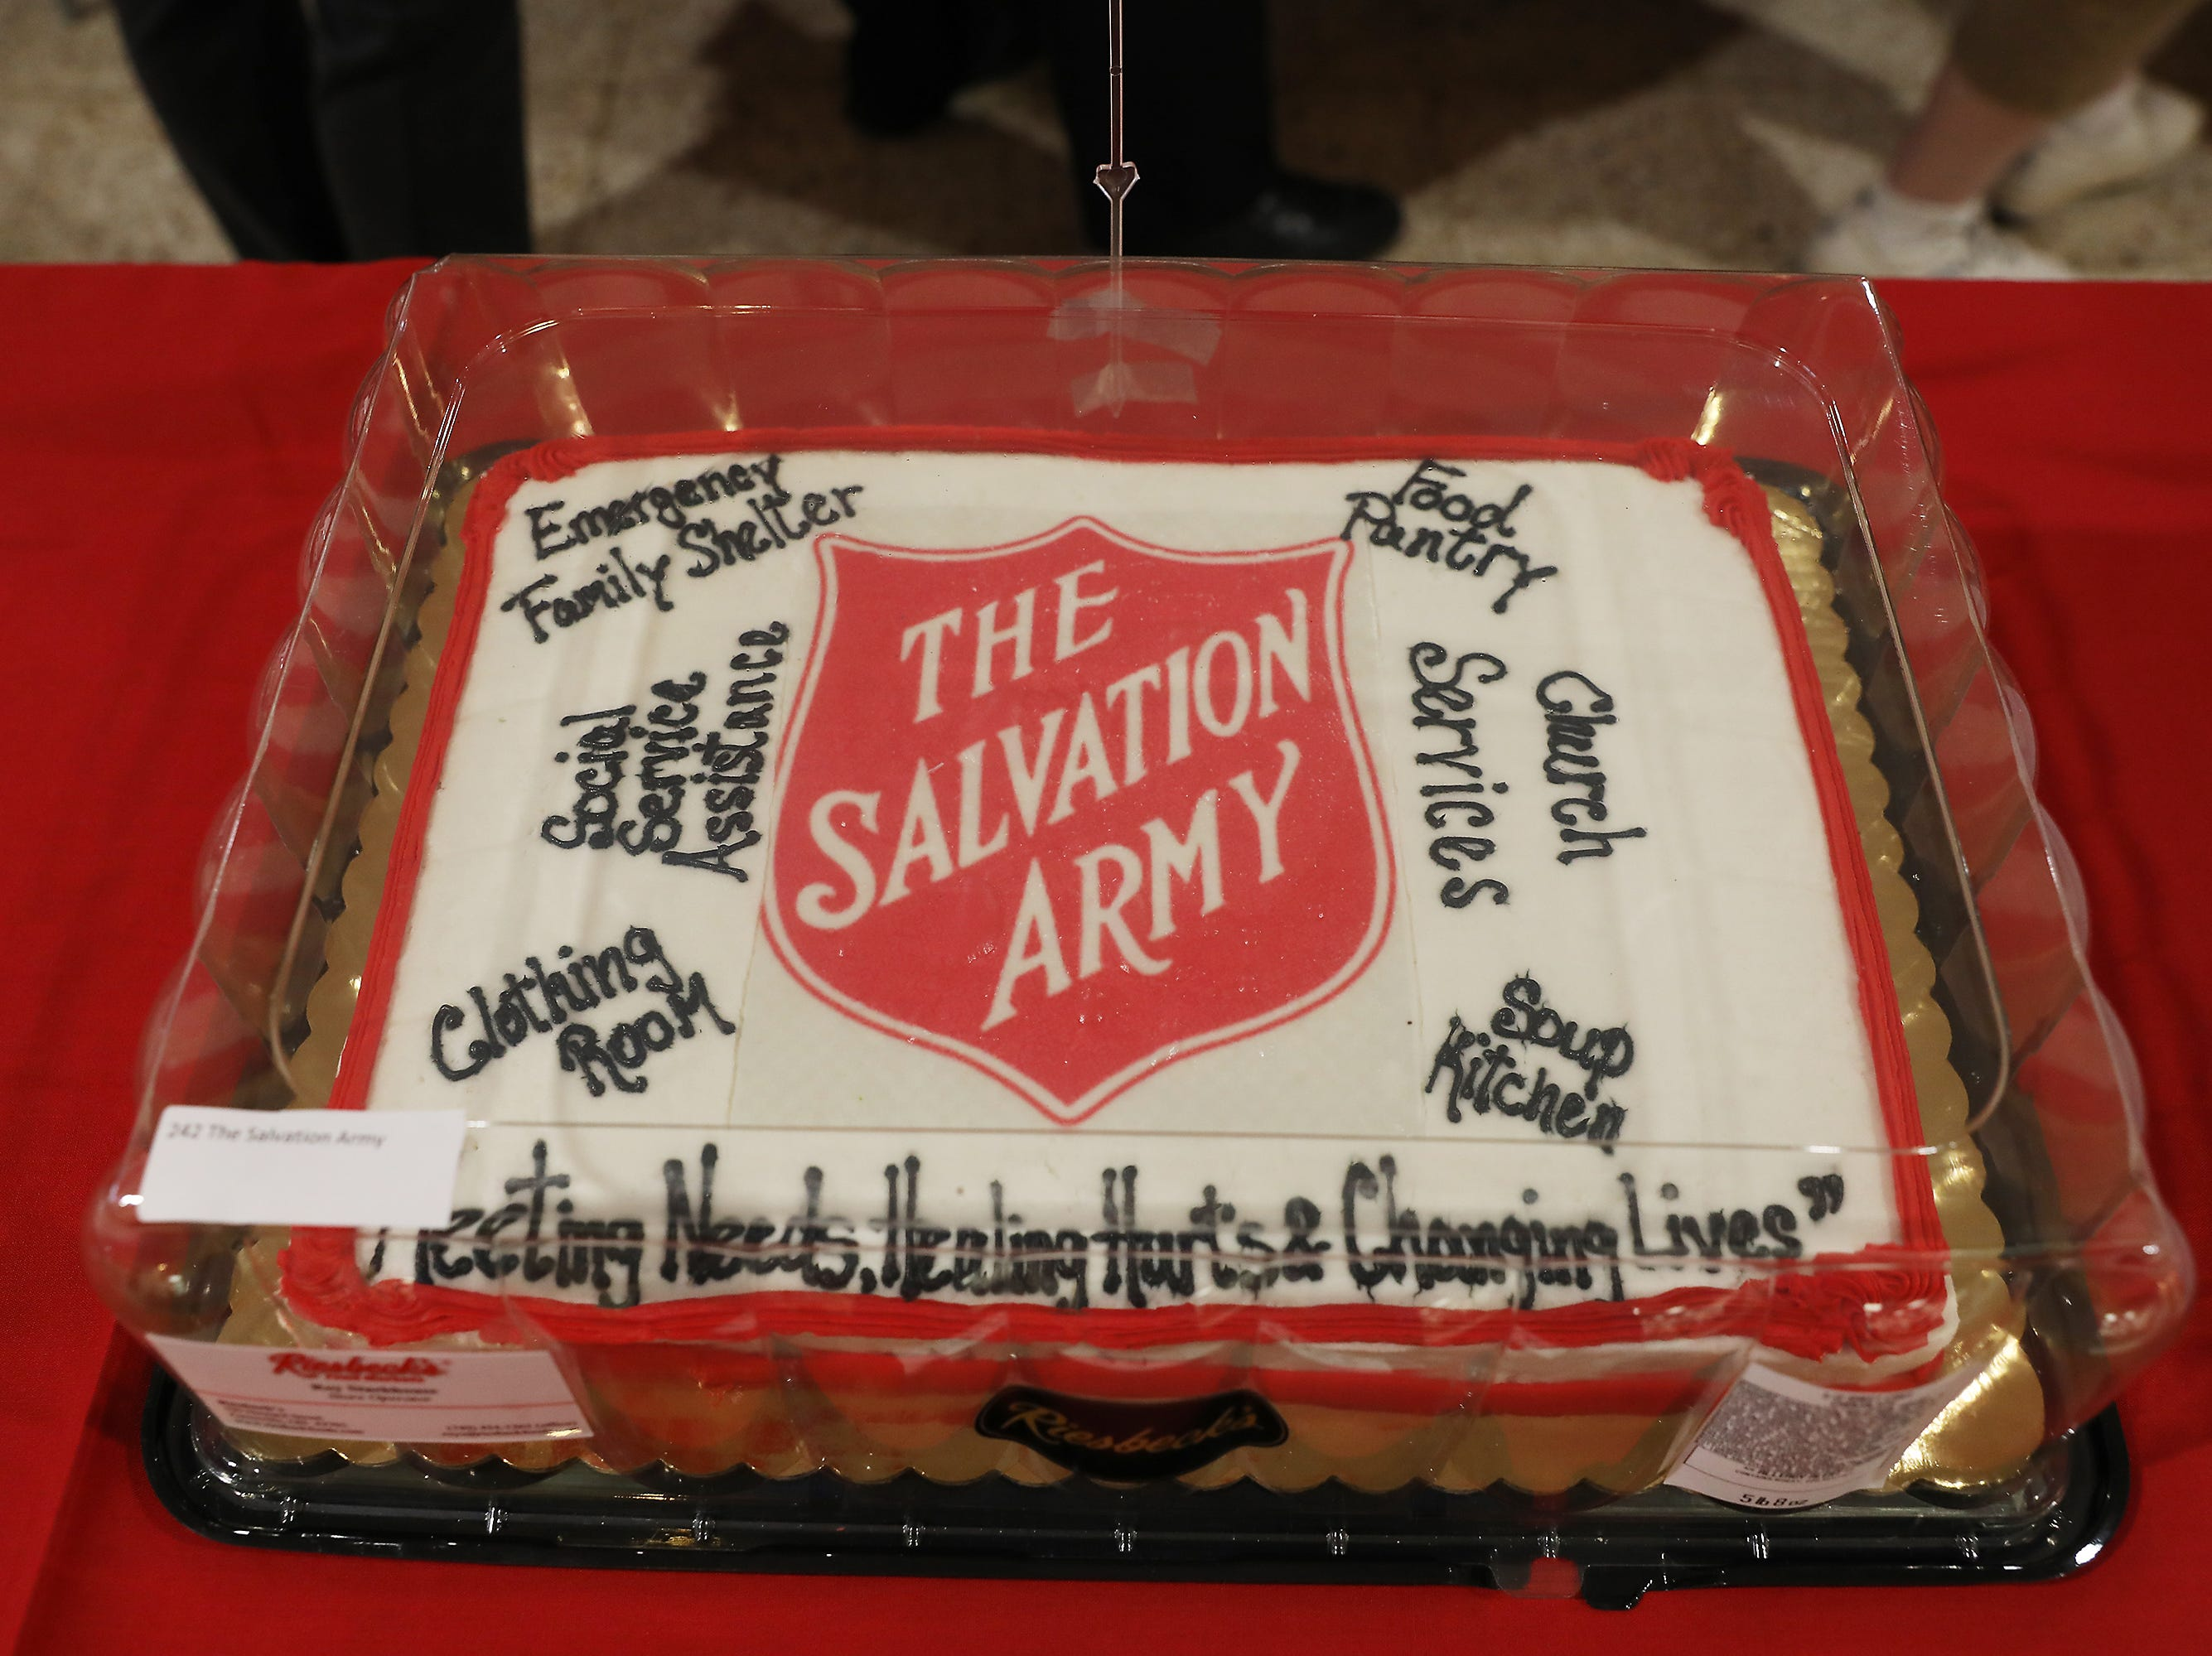 9:30 A.M. Friday cake 242 The Salvation Army